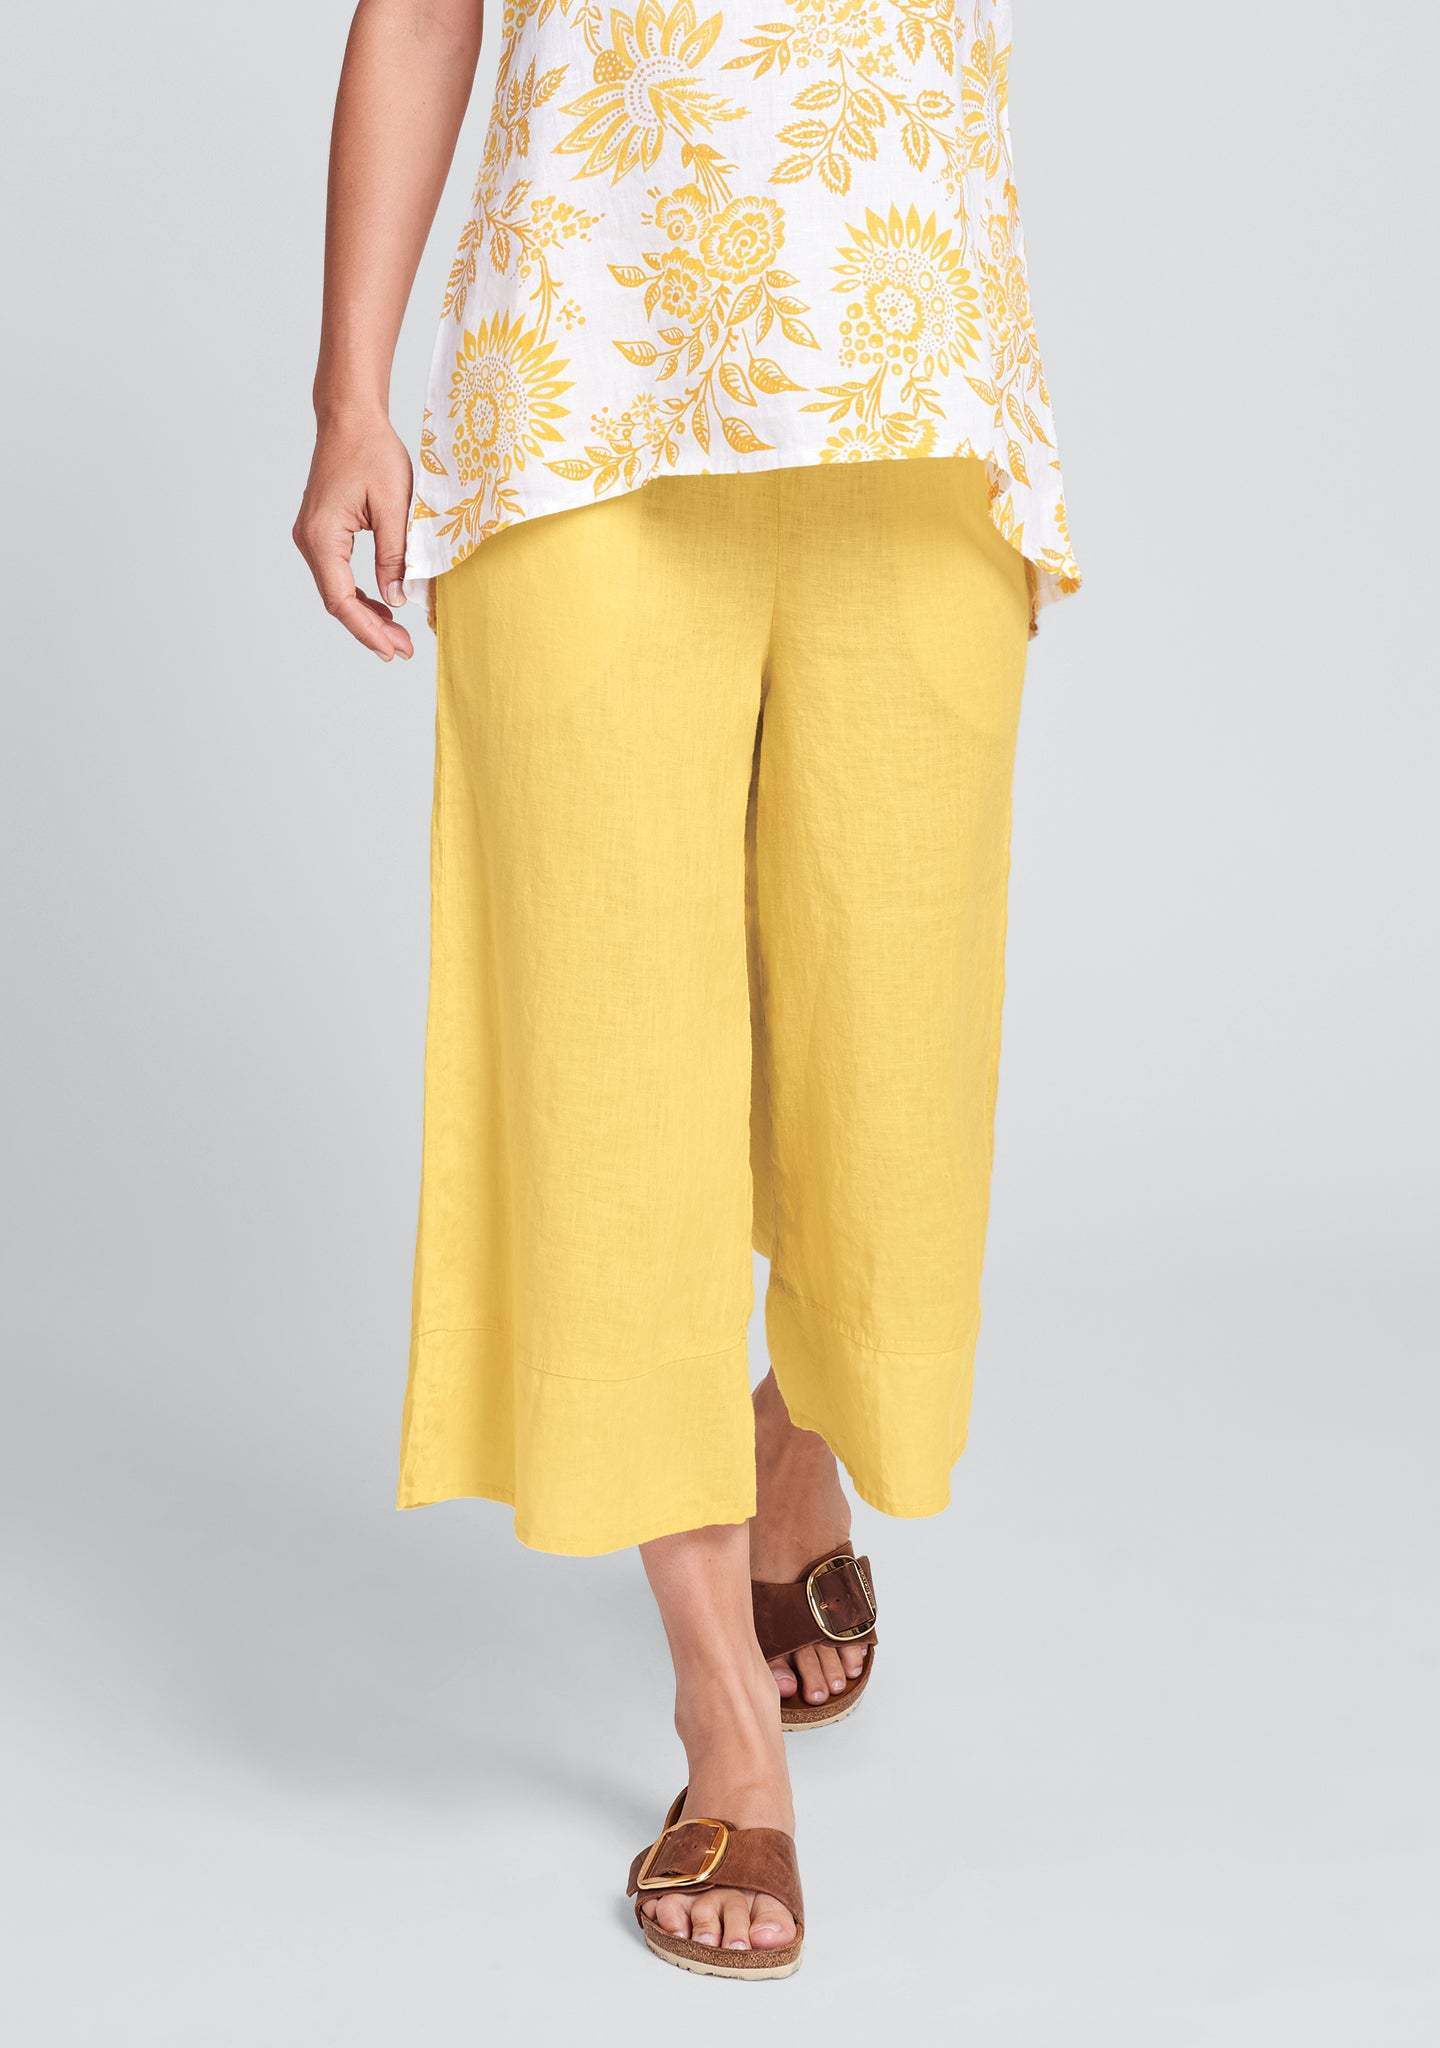 bloom pant linen pants with elastic waist yellow